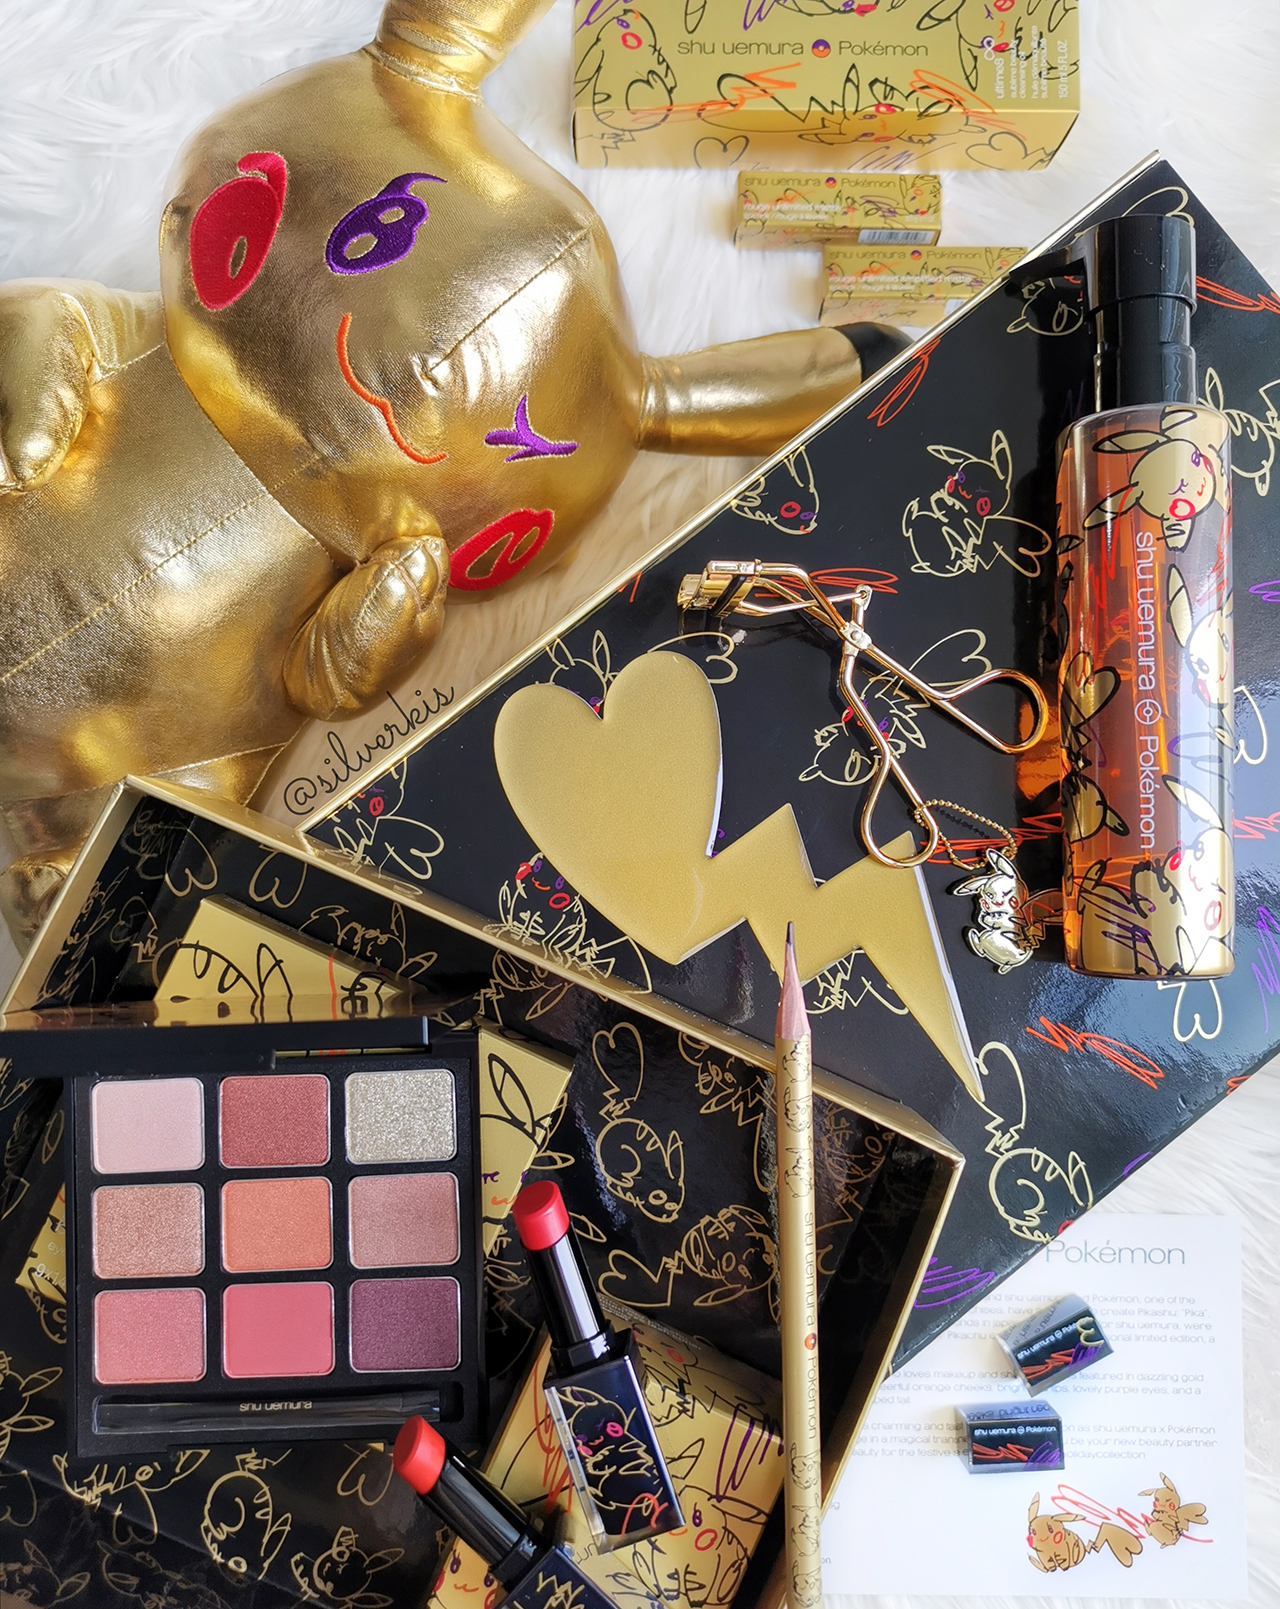 Shu Uemura x Pokemon Pikashu collection for Holiday 2019